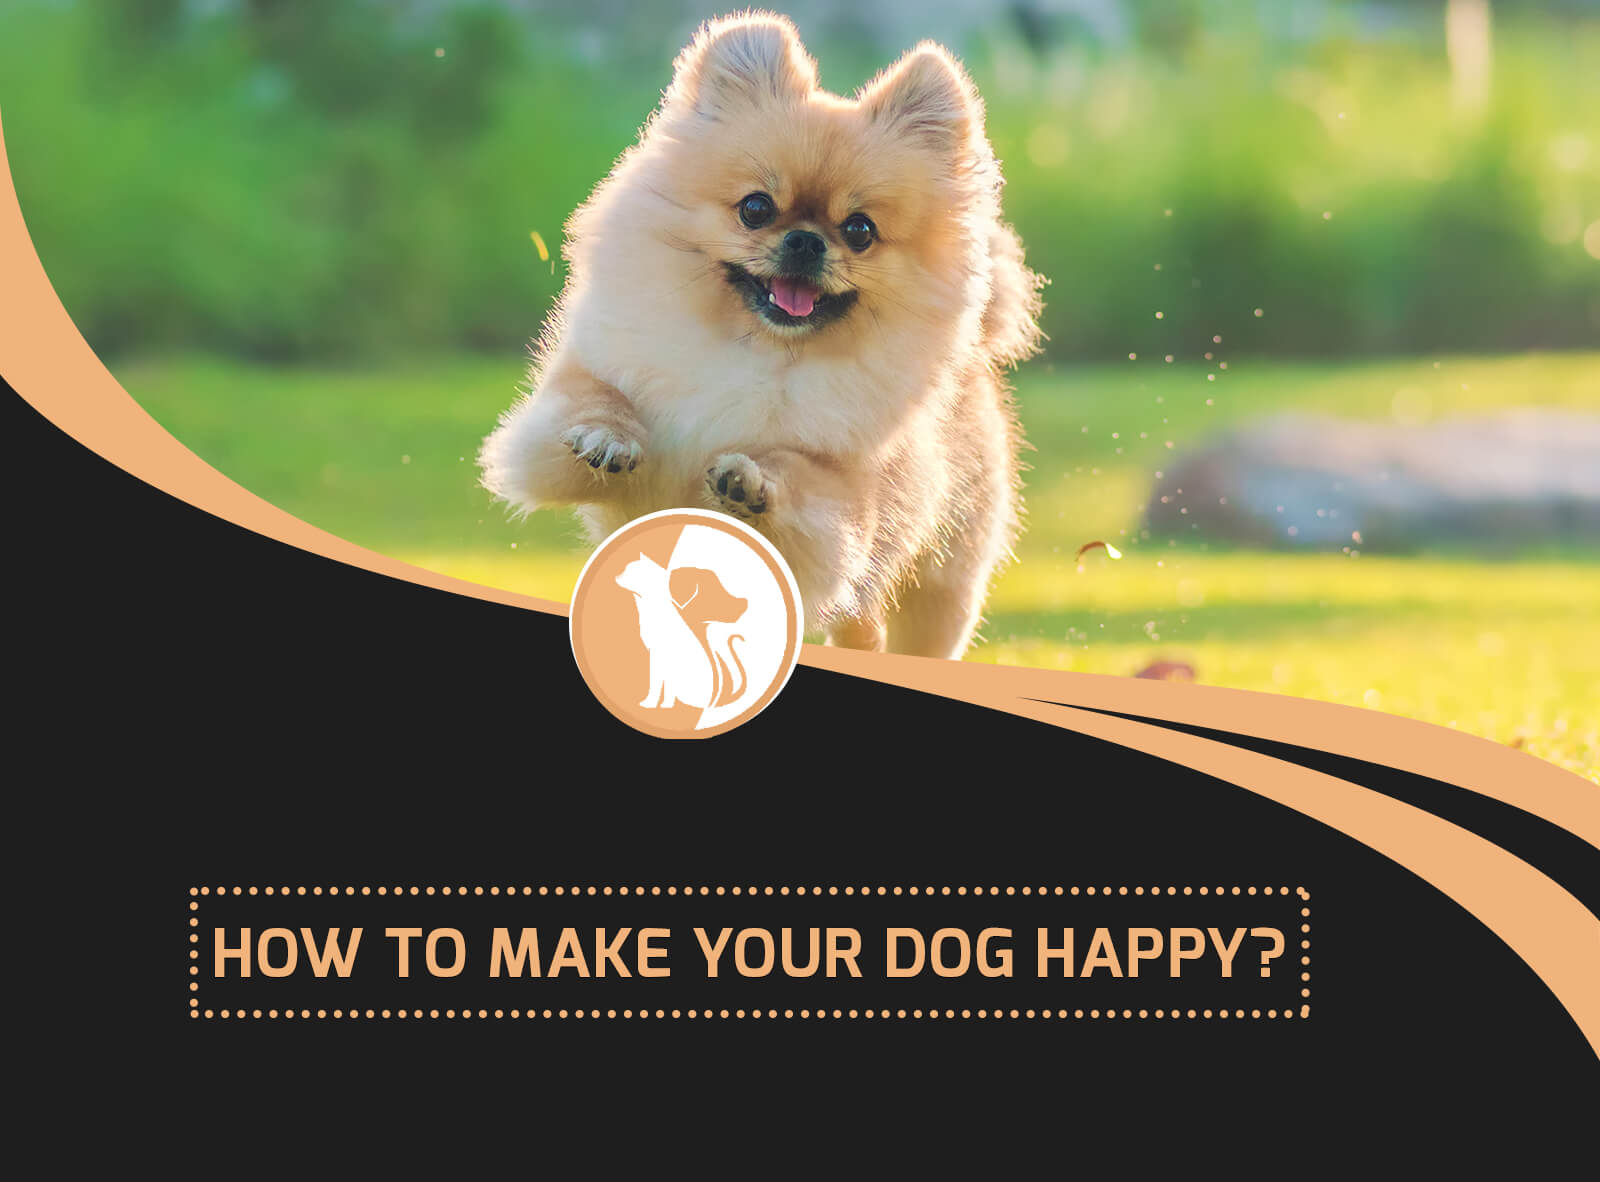 How to Make Your Dog Happy